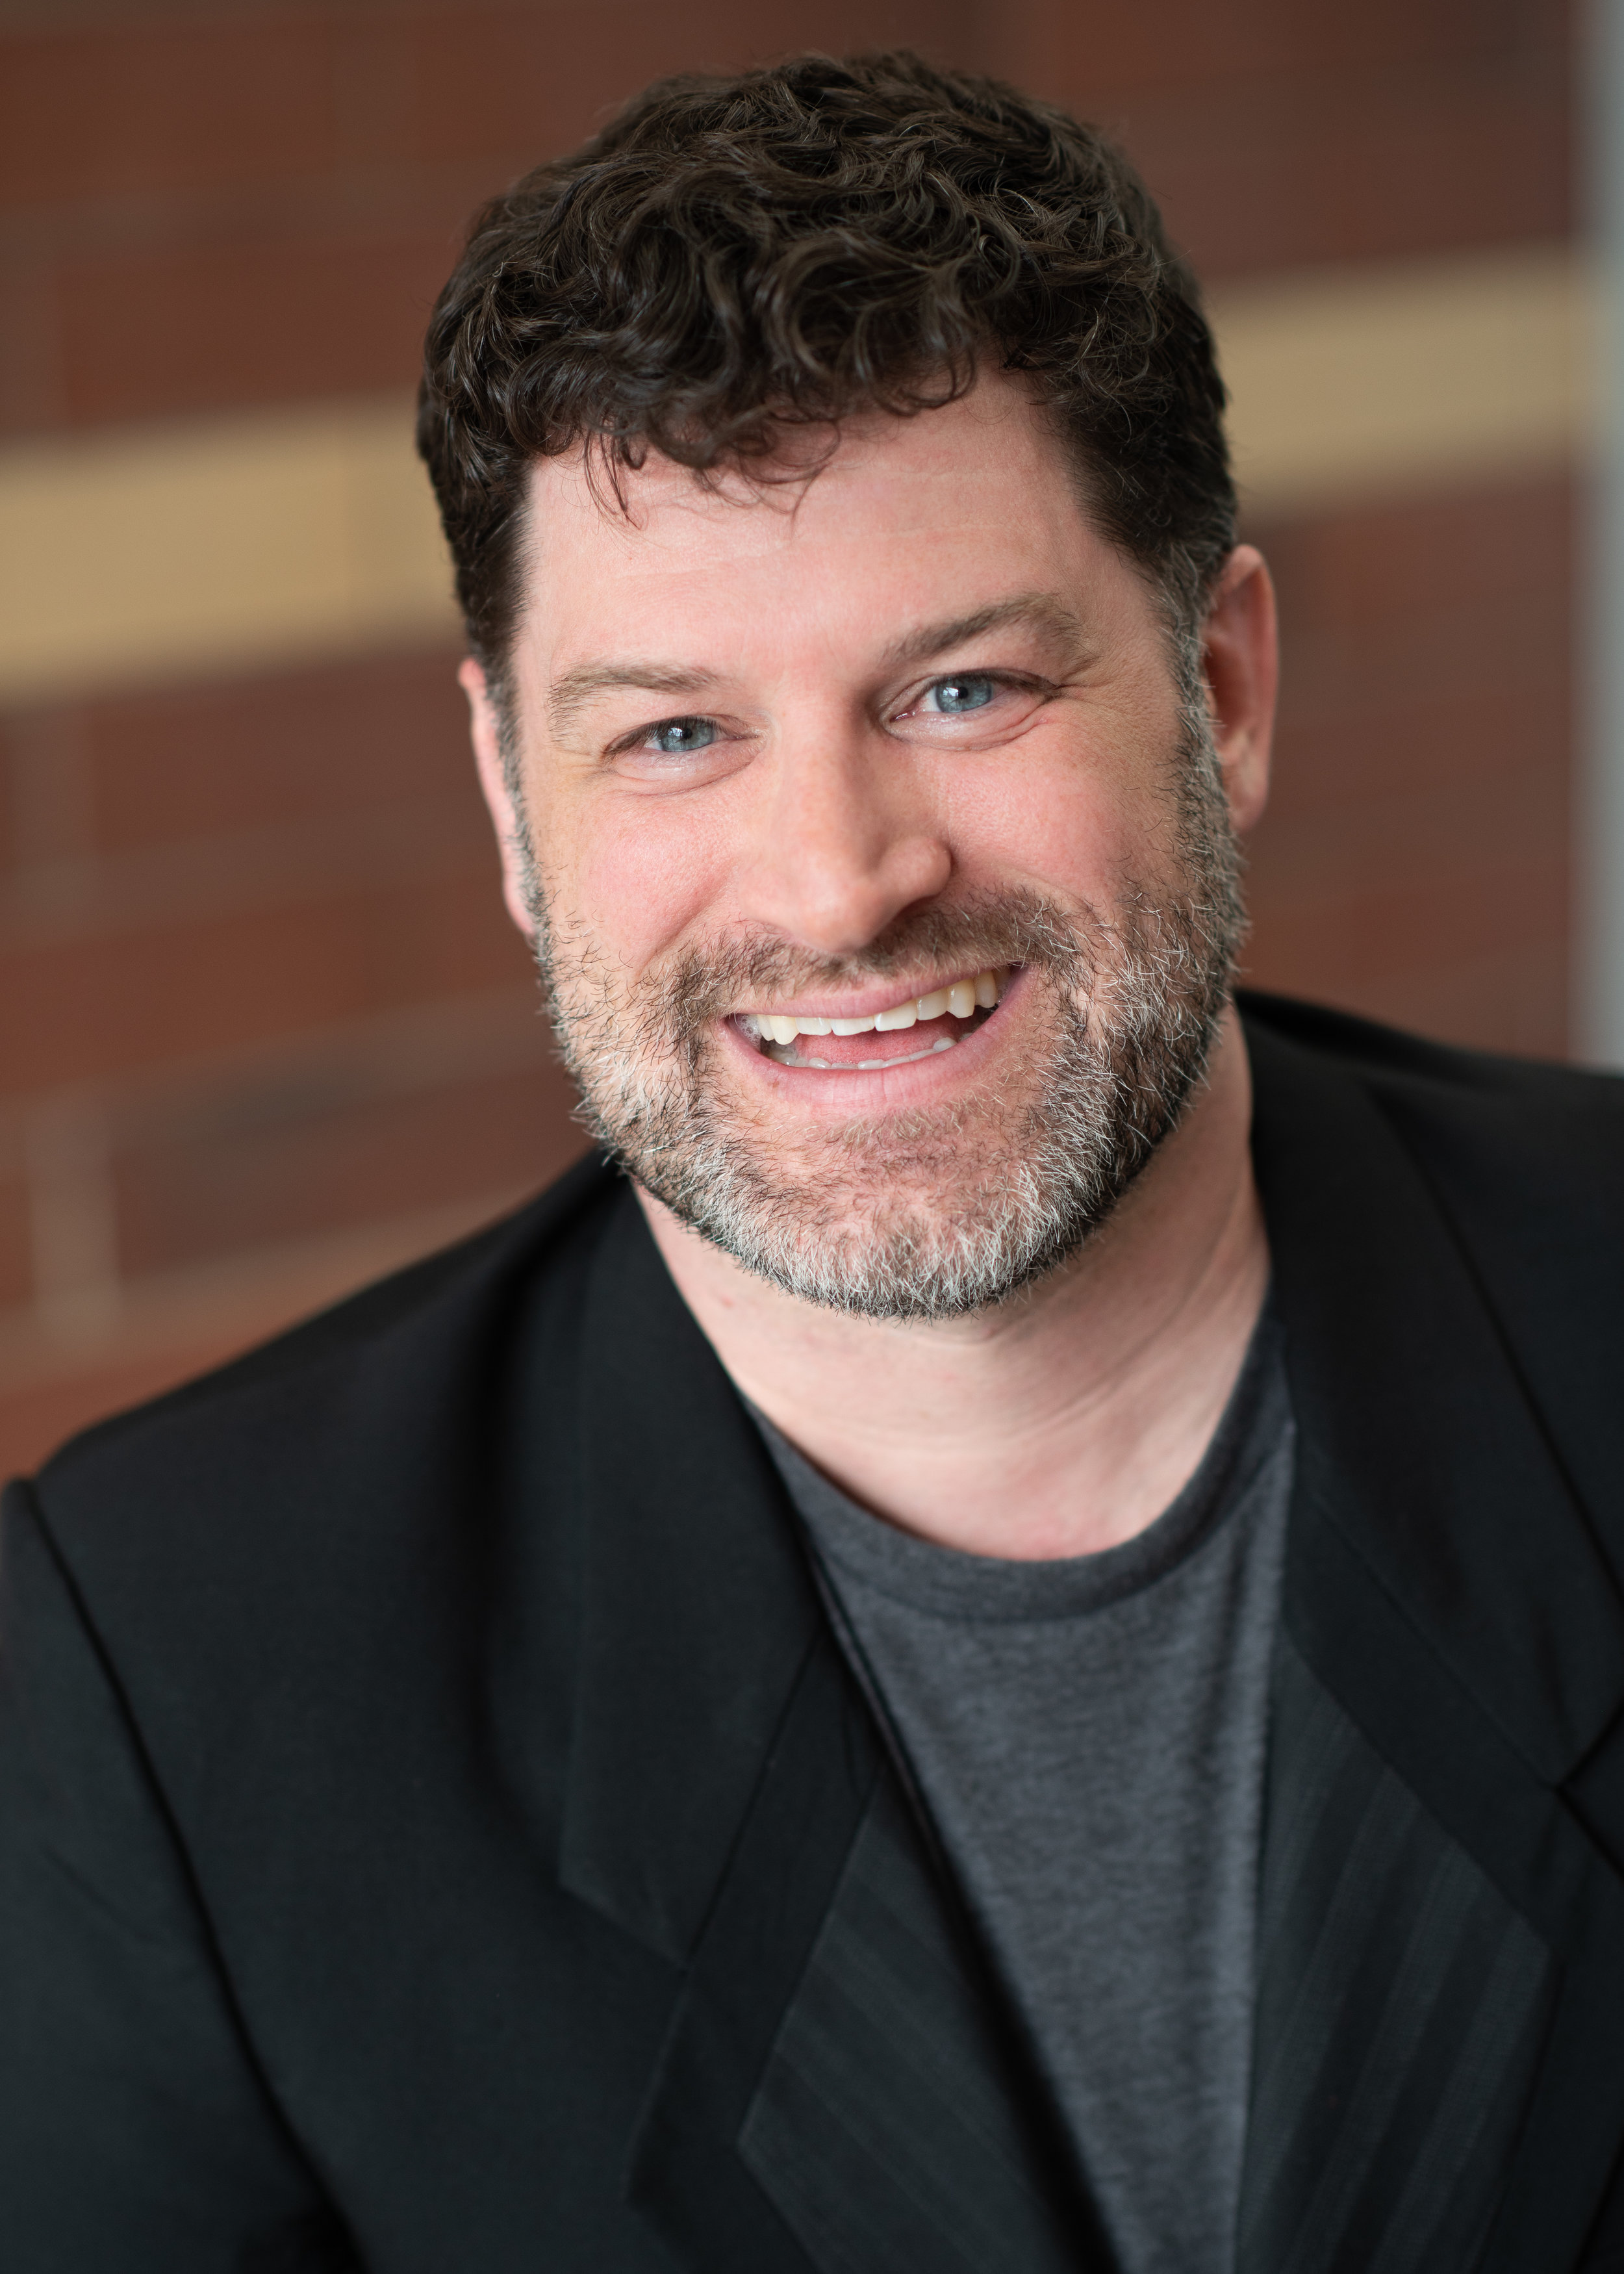 Rob Sutherland, Artistic Director. Photo by Twin Cities Headshots.